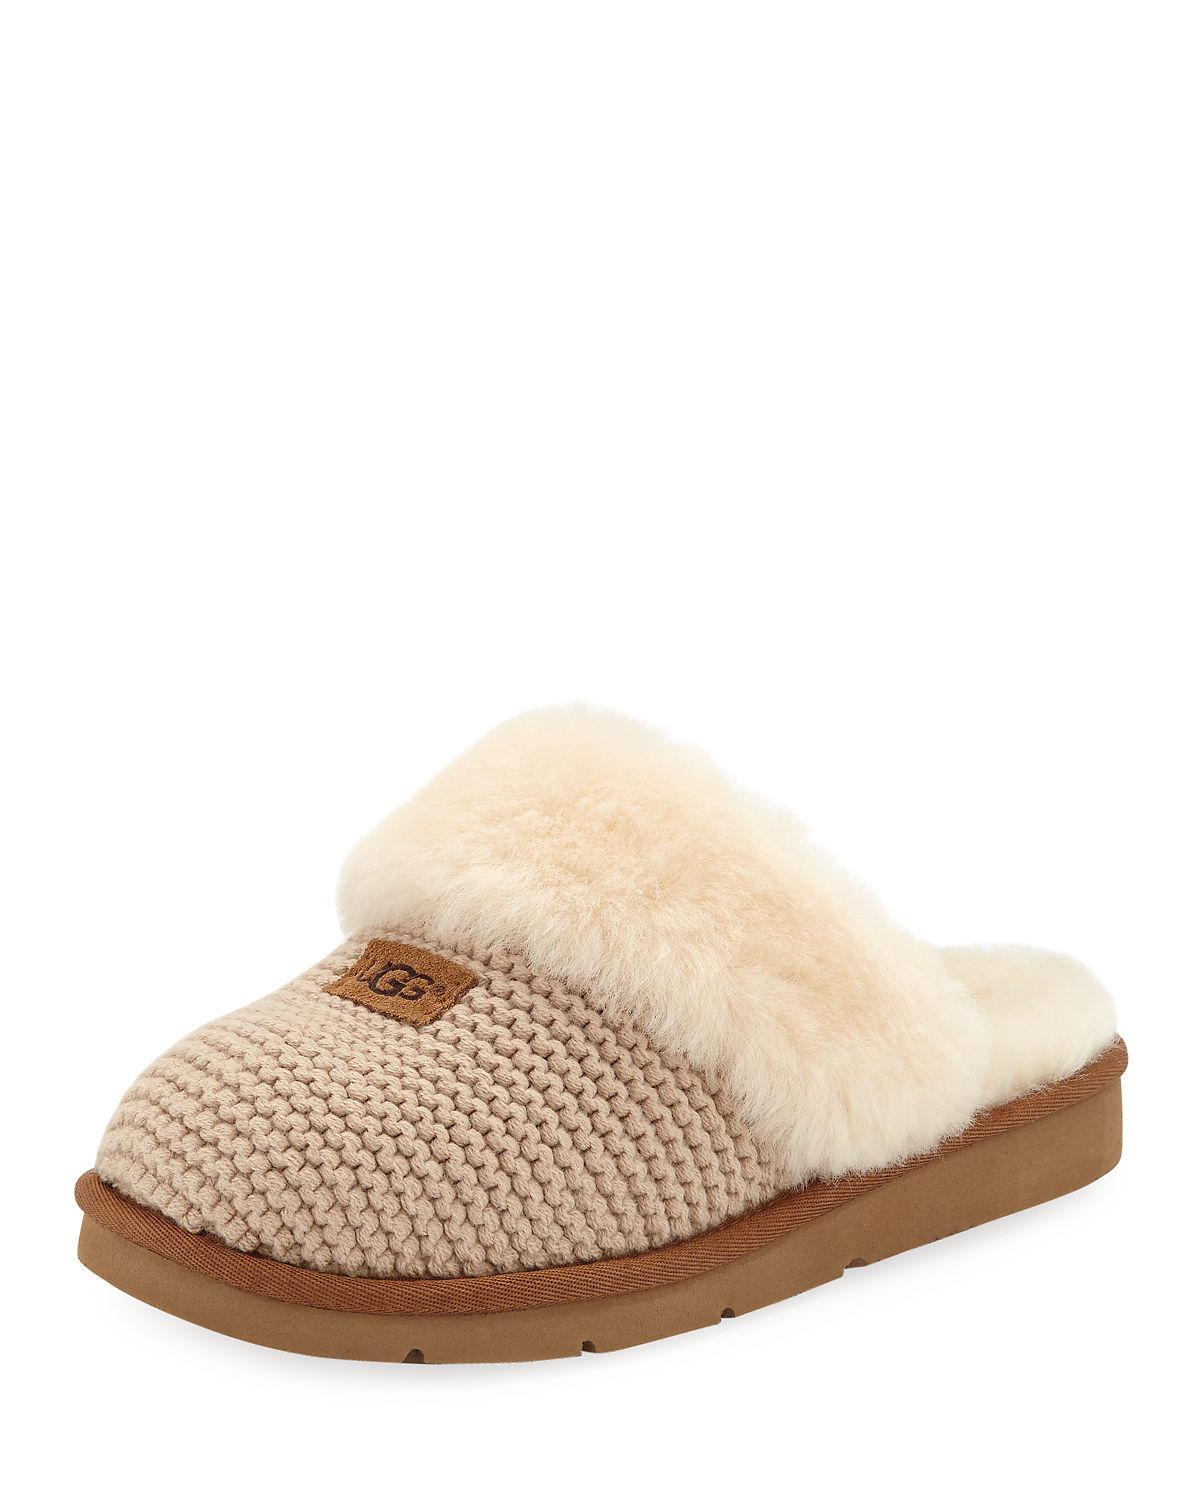 588973707d0 Cozy Knit Slippers with Sheepskin